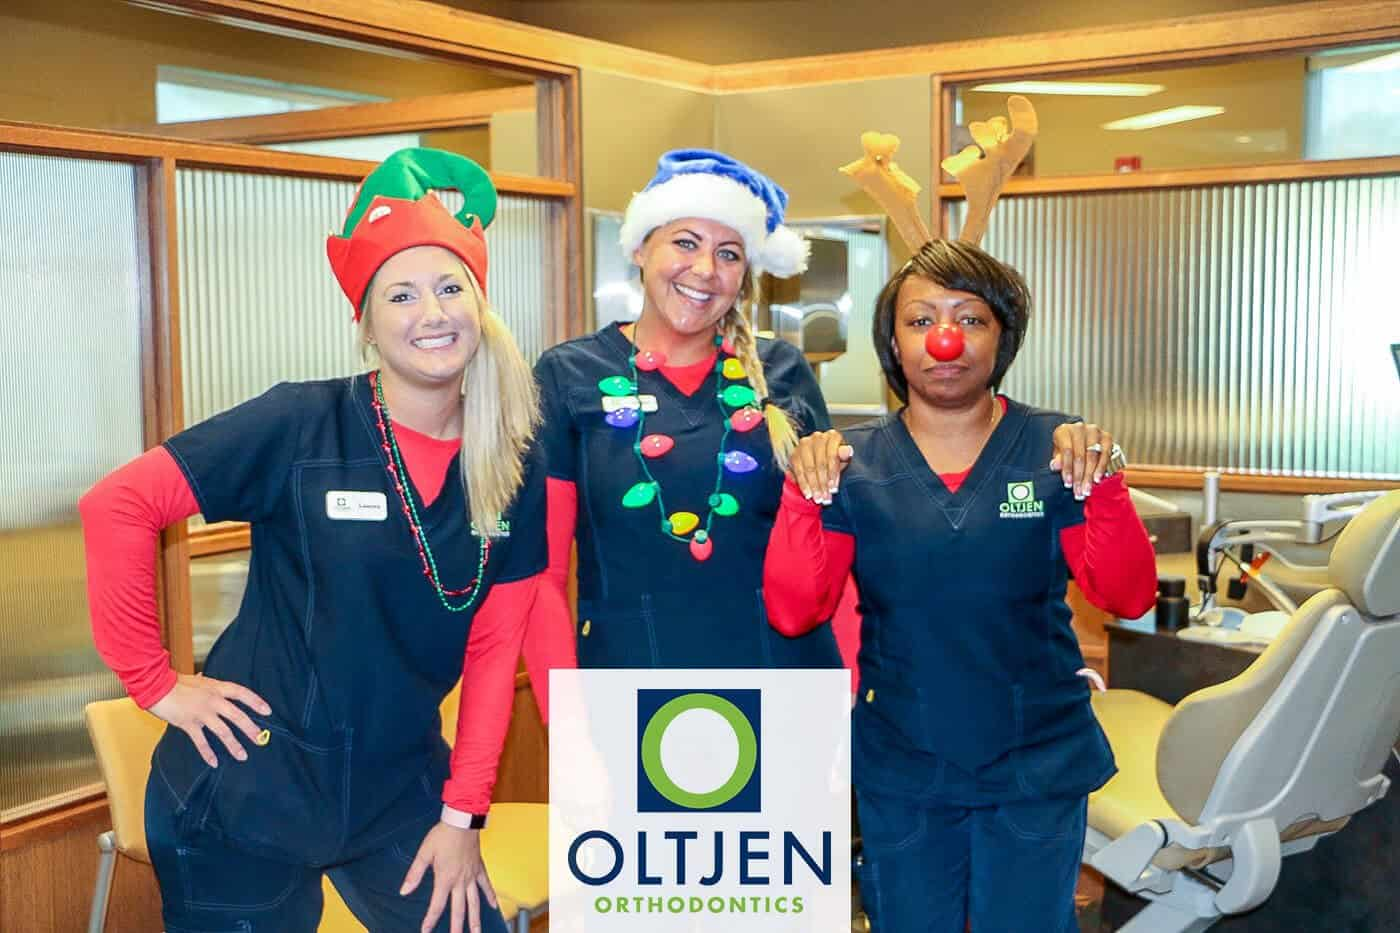 Oltjen-Orthodontics-Christmas-in-July-3-of-10